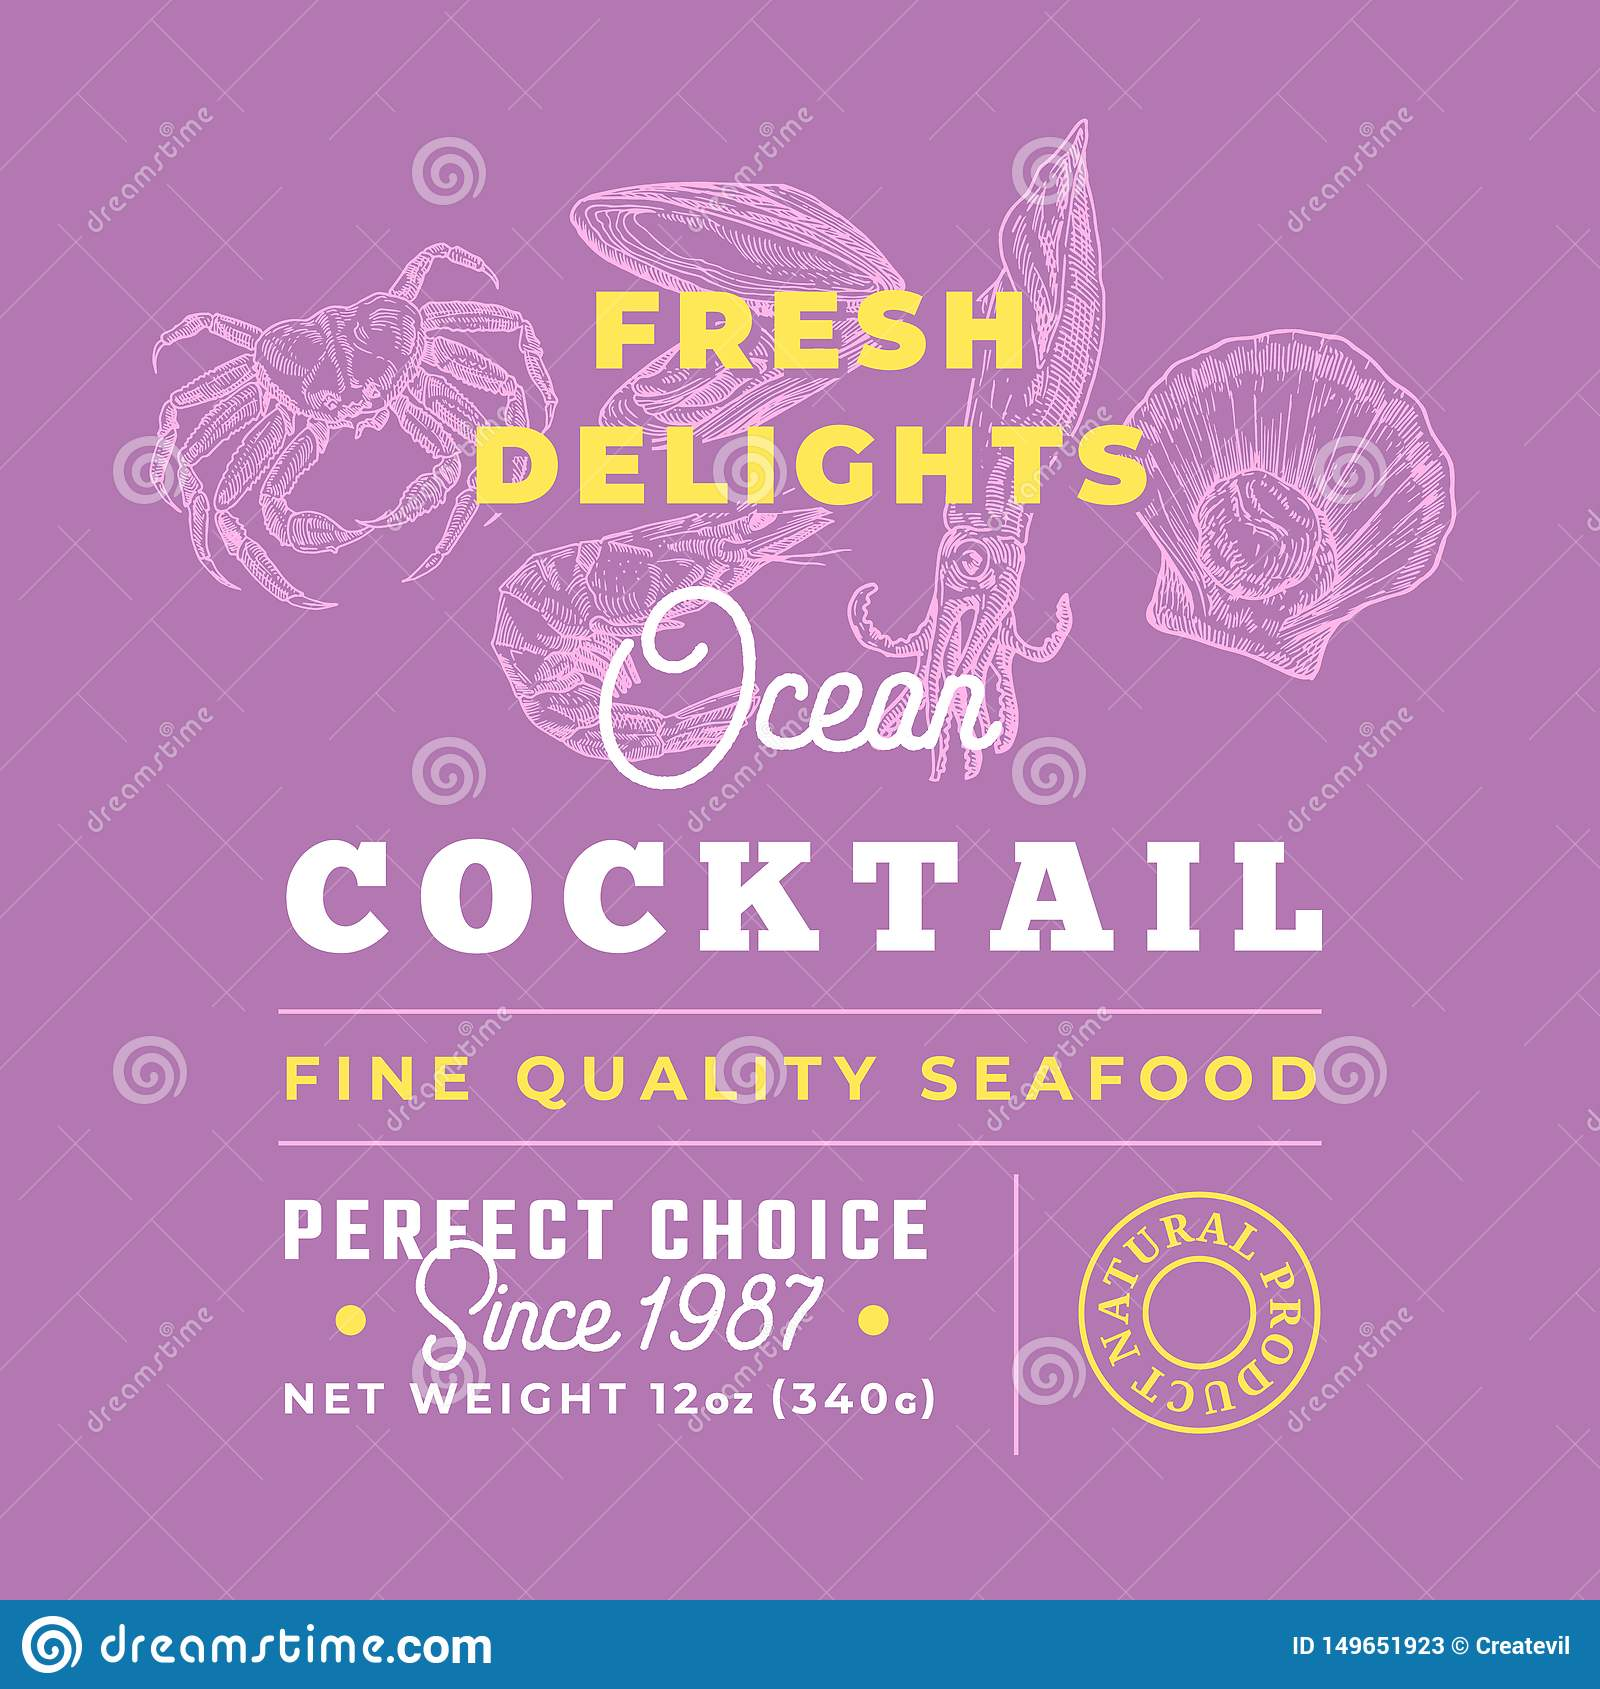 Fresh Seafood Cocktail Delights Premium Quality Label. Abstract Vector Packaging Design Layout. Retro Typography with